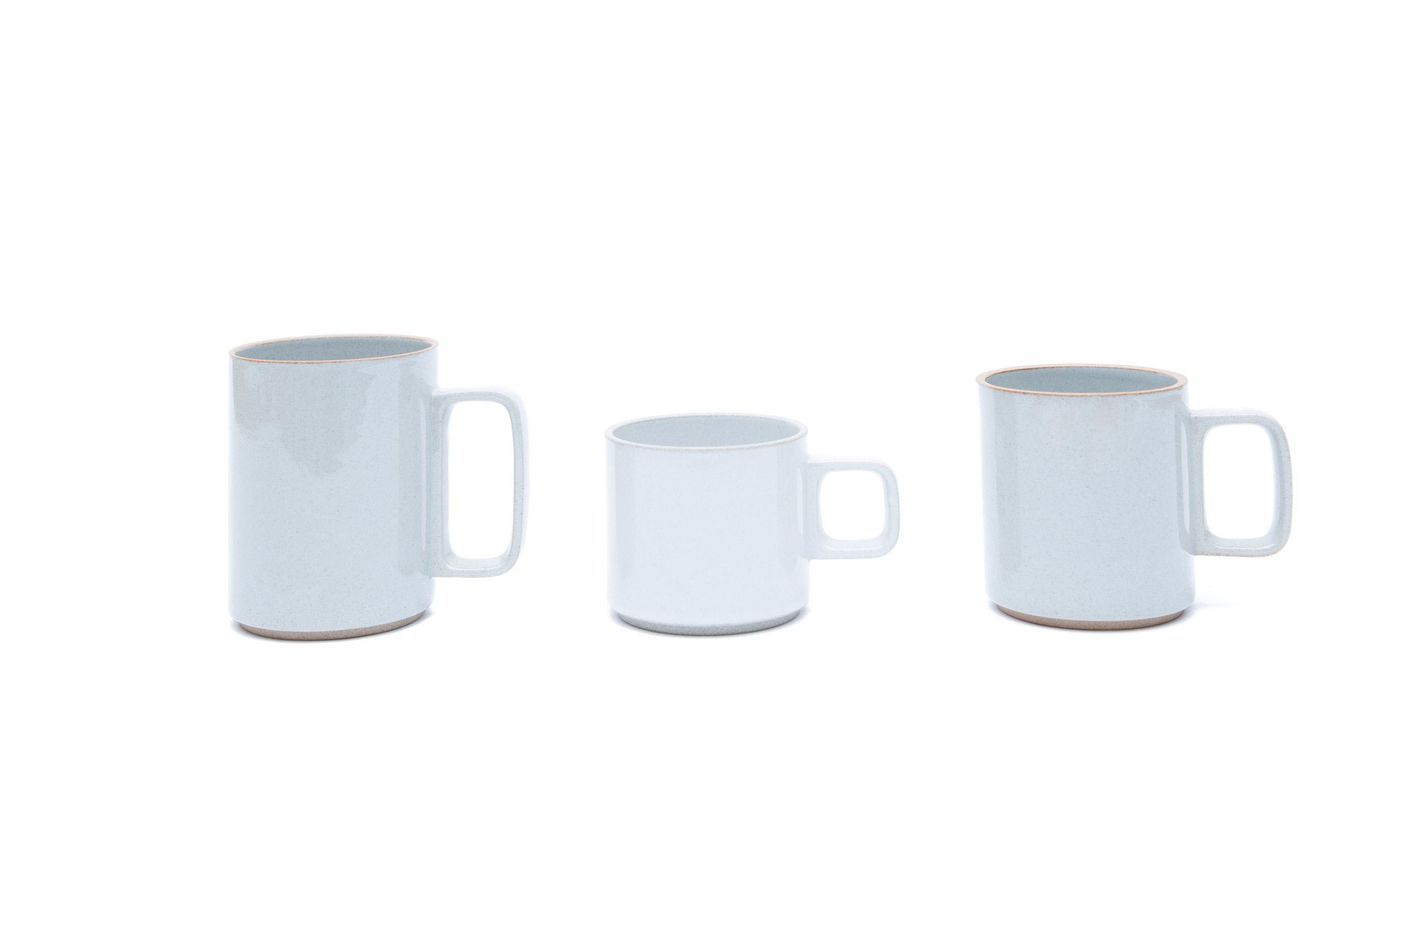 Hasami Porcelain Mug in Gloss Gray